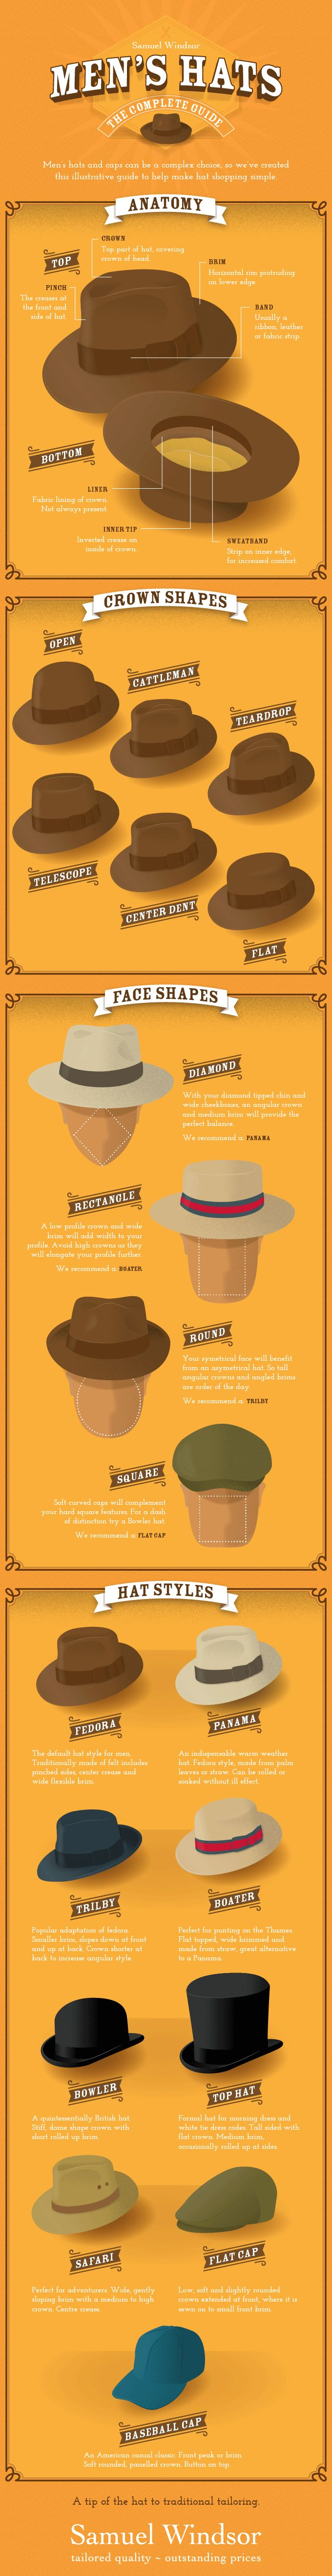 Men's Hats – The Complete Guide #Infographic #Fashion #Men